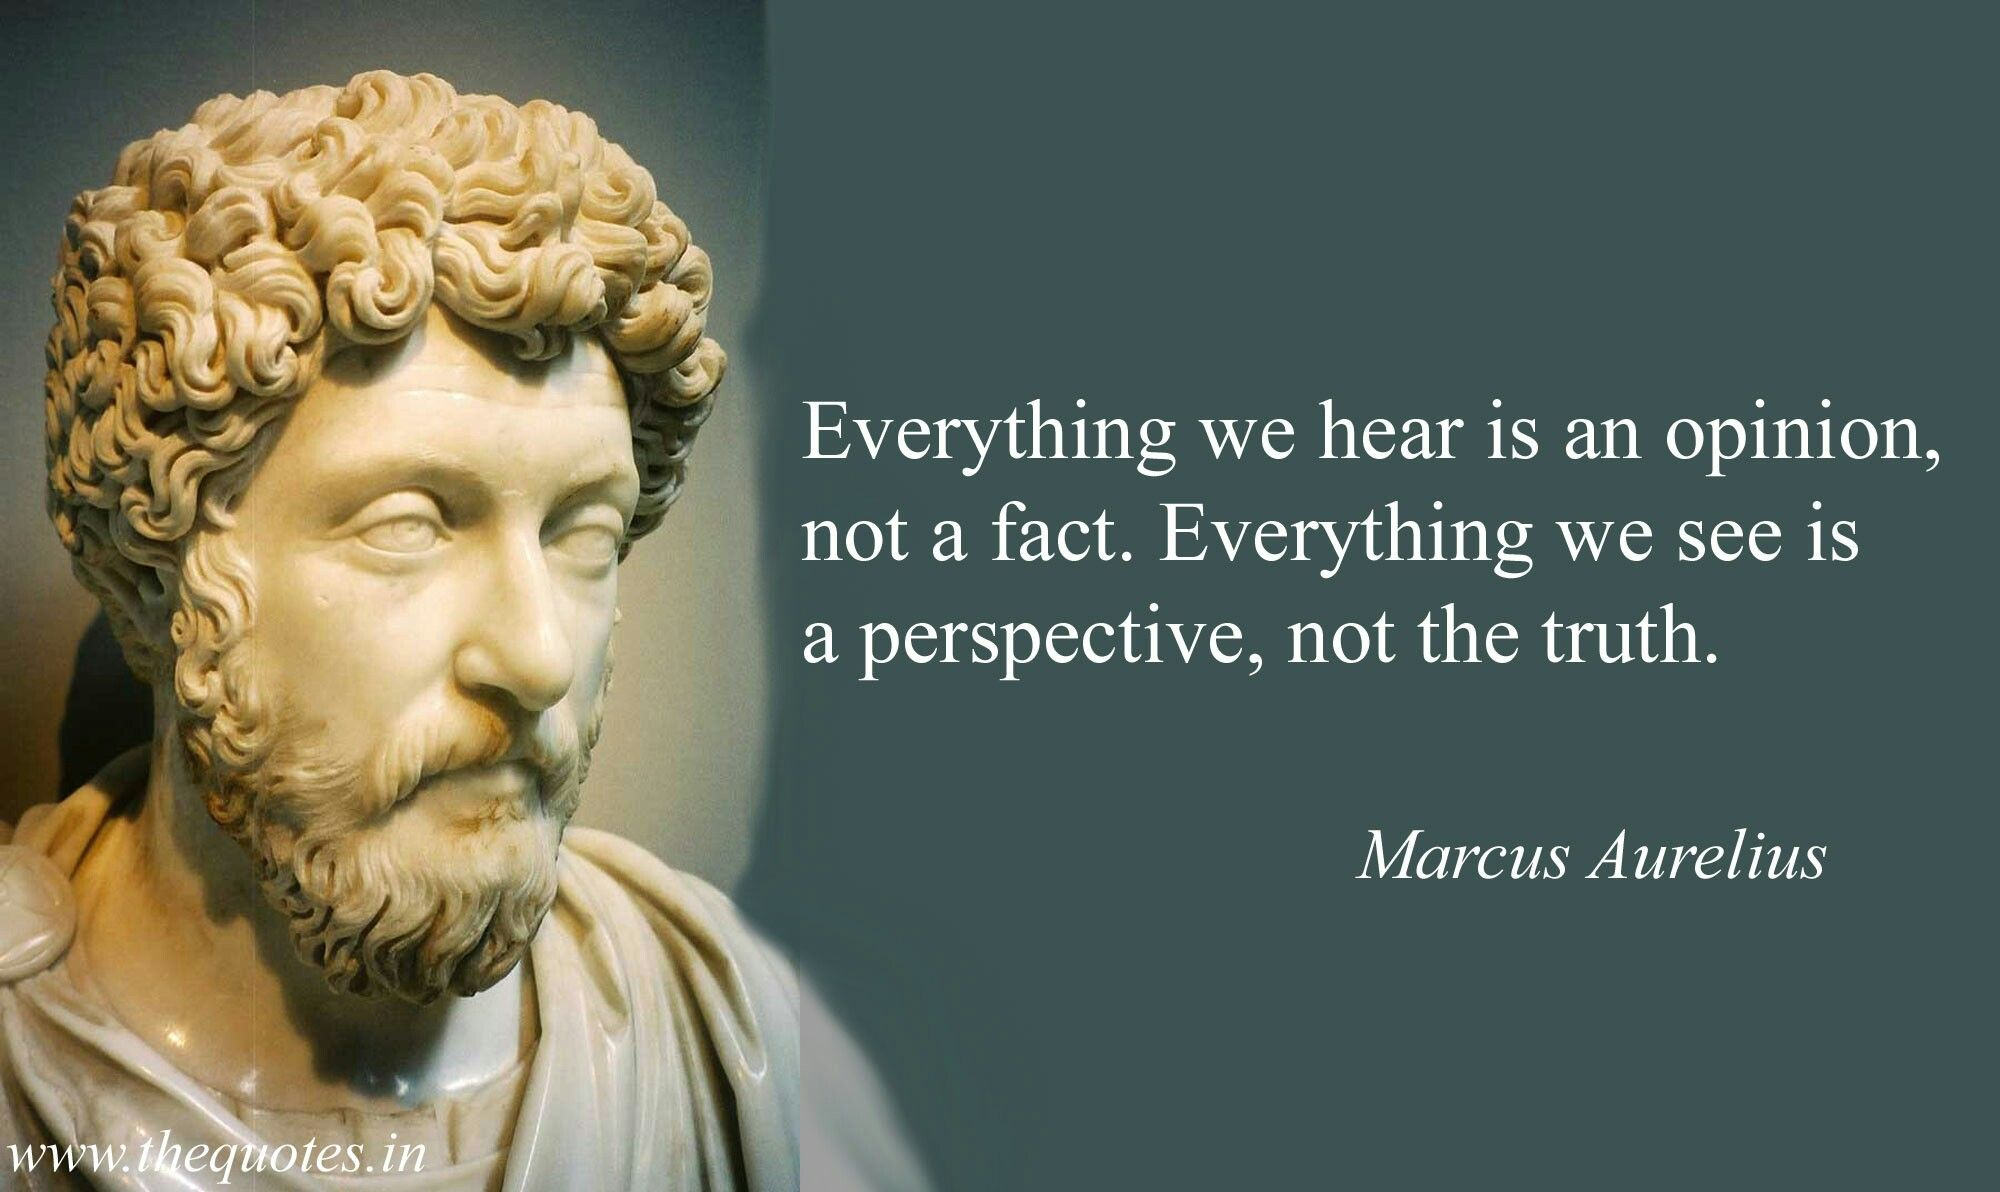 Marcus Aurelius Quotes Marcus Aurelius  Sayings And Quotes  Pinterest  Quotation